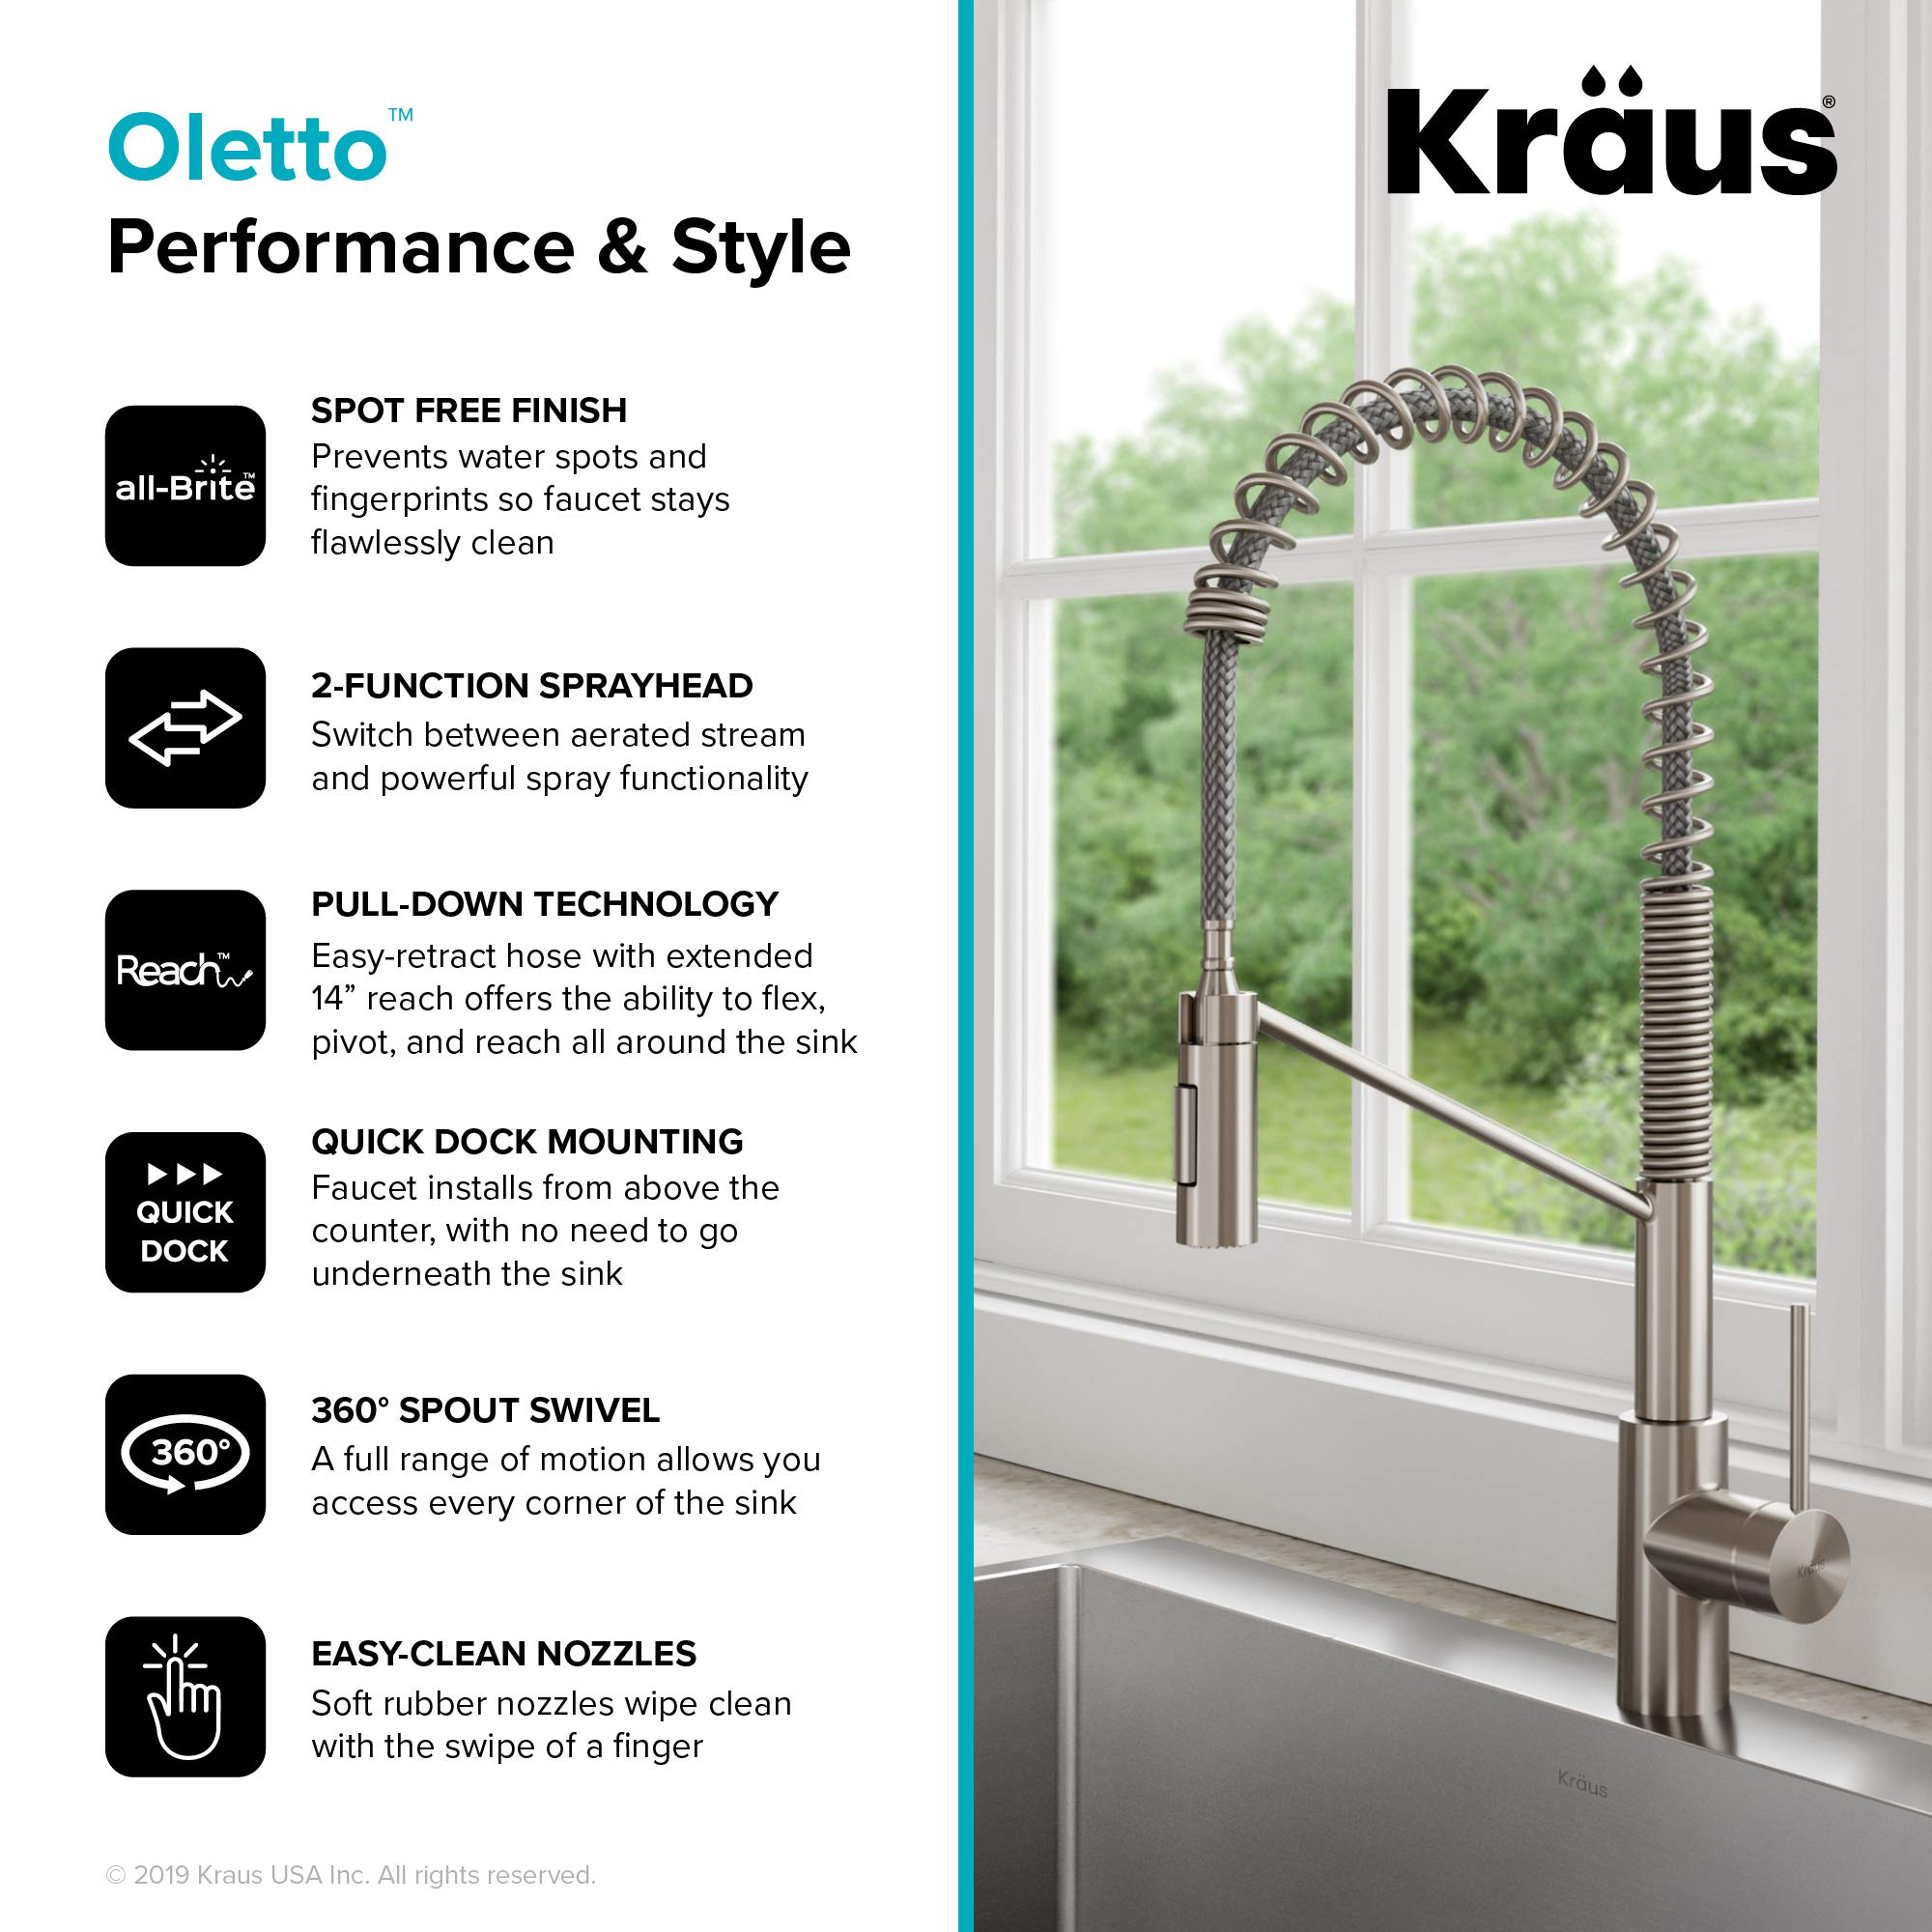 Kraus KPF-2631SFS Oletto Kitchen Faucet, 21.75 inch, Spot Free Stainless Steel by Kraus (Image #8)